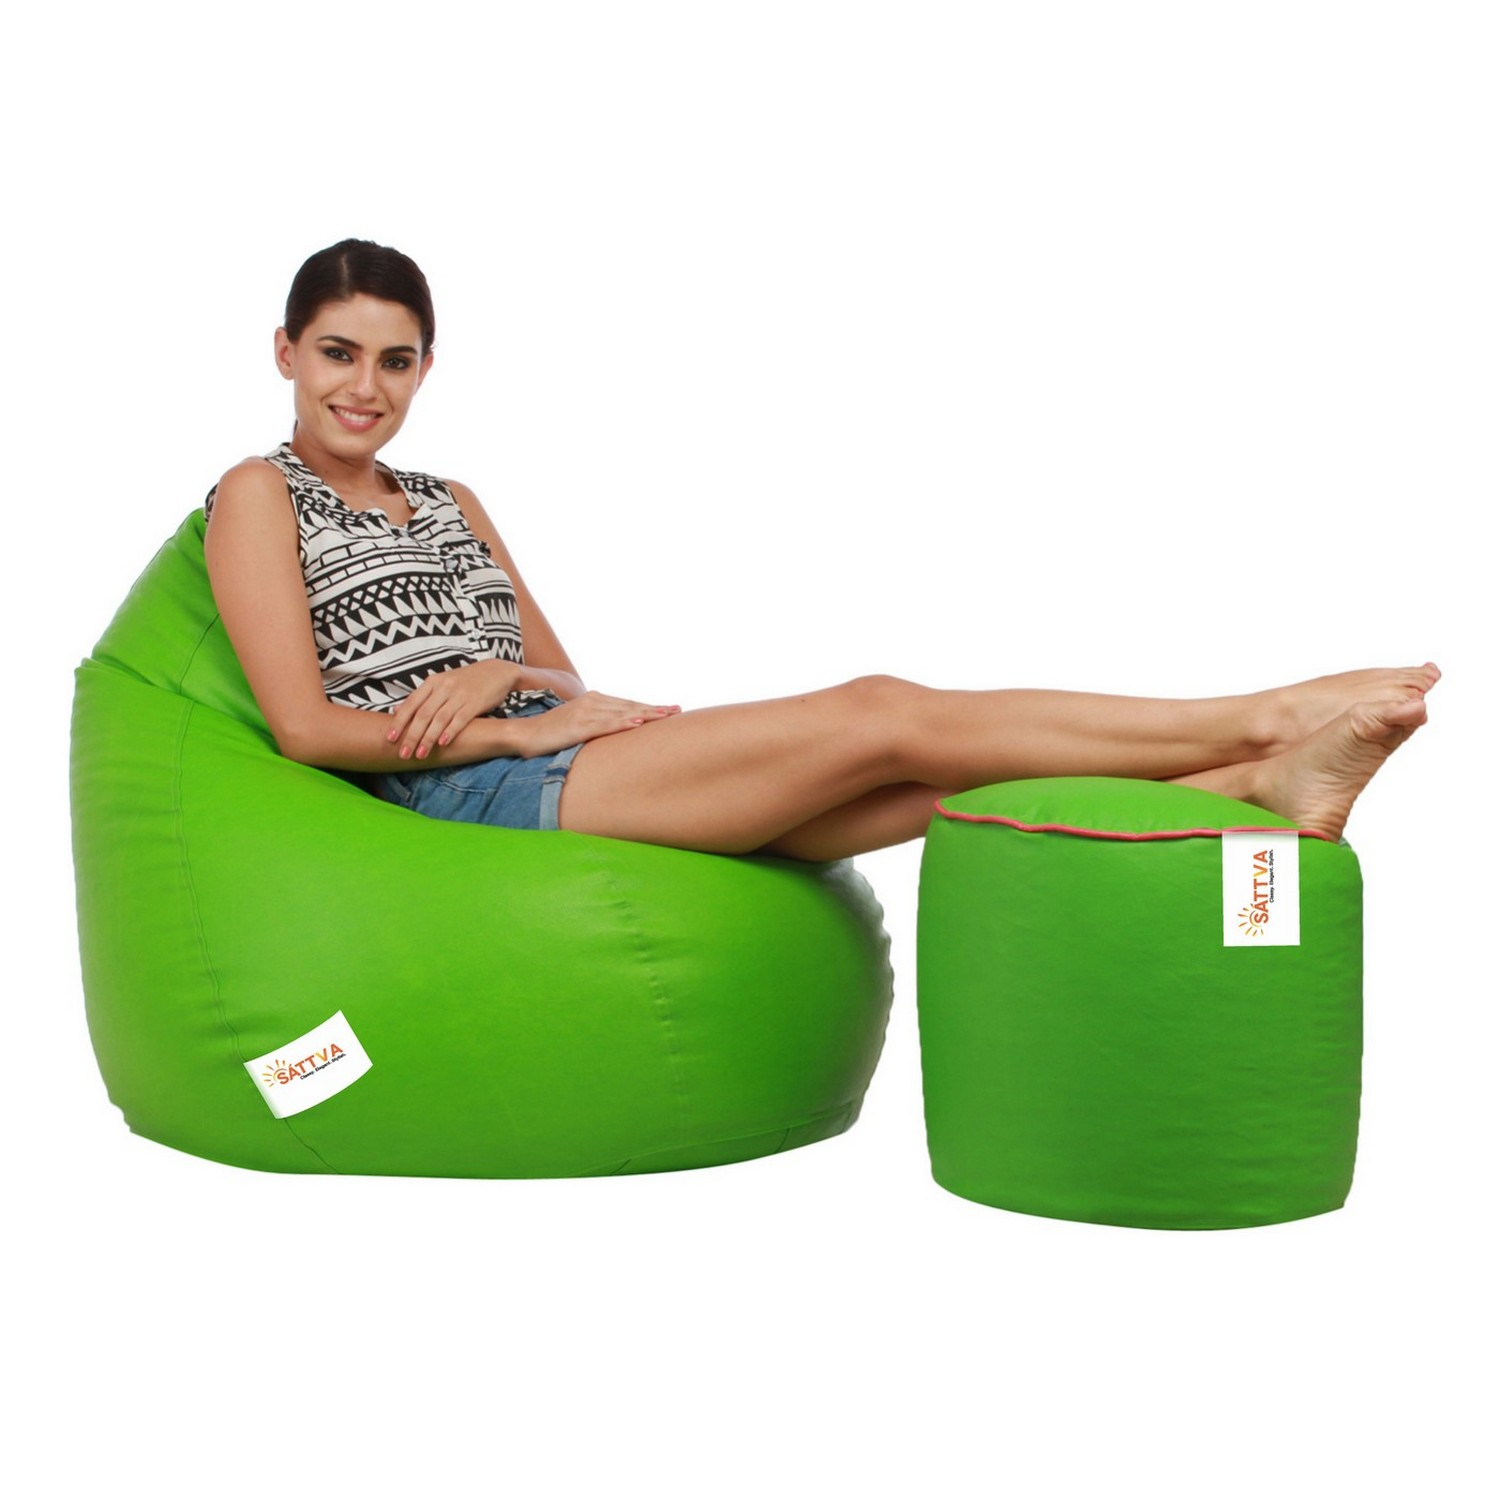 Sattva Combo Classic Bean Bag And Round Foostool-(Filled) Black With Pink Piping - XL (Neon Green with pink Piping,XL)